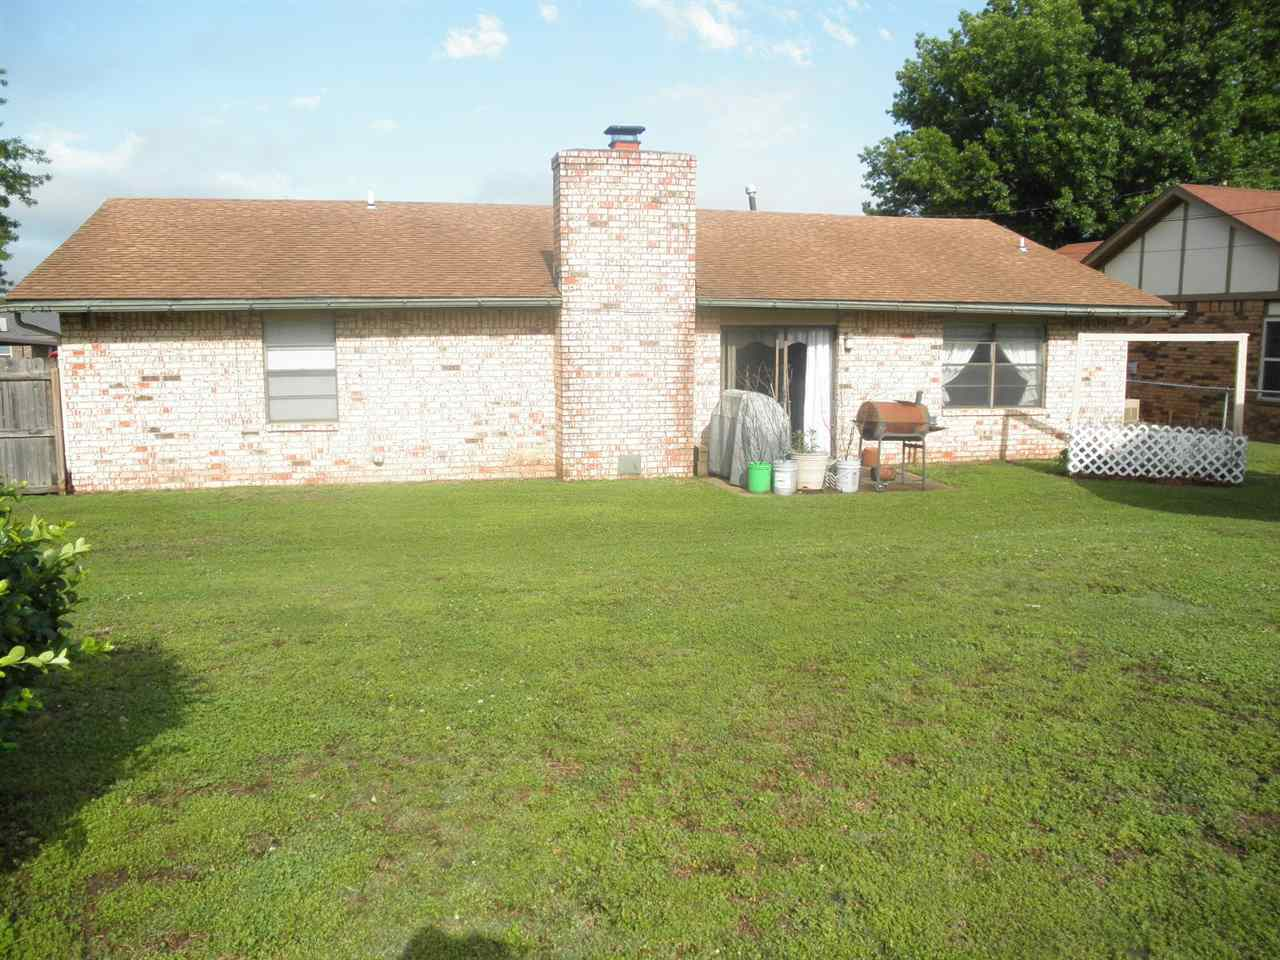 Sold Cross Sale W/ MLS | 601 Hampton Ponca City, OK 74601 15